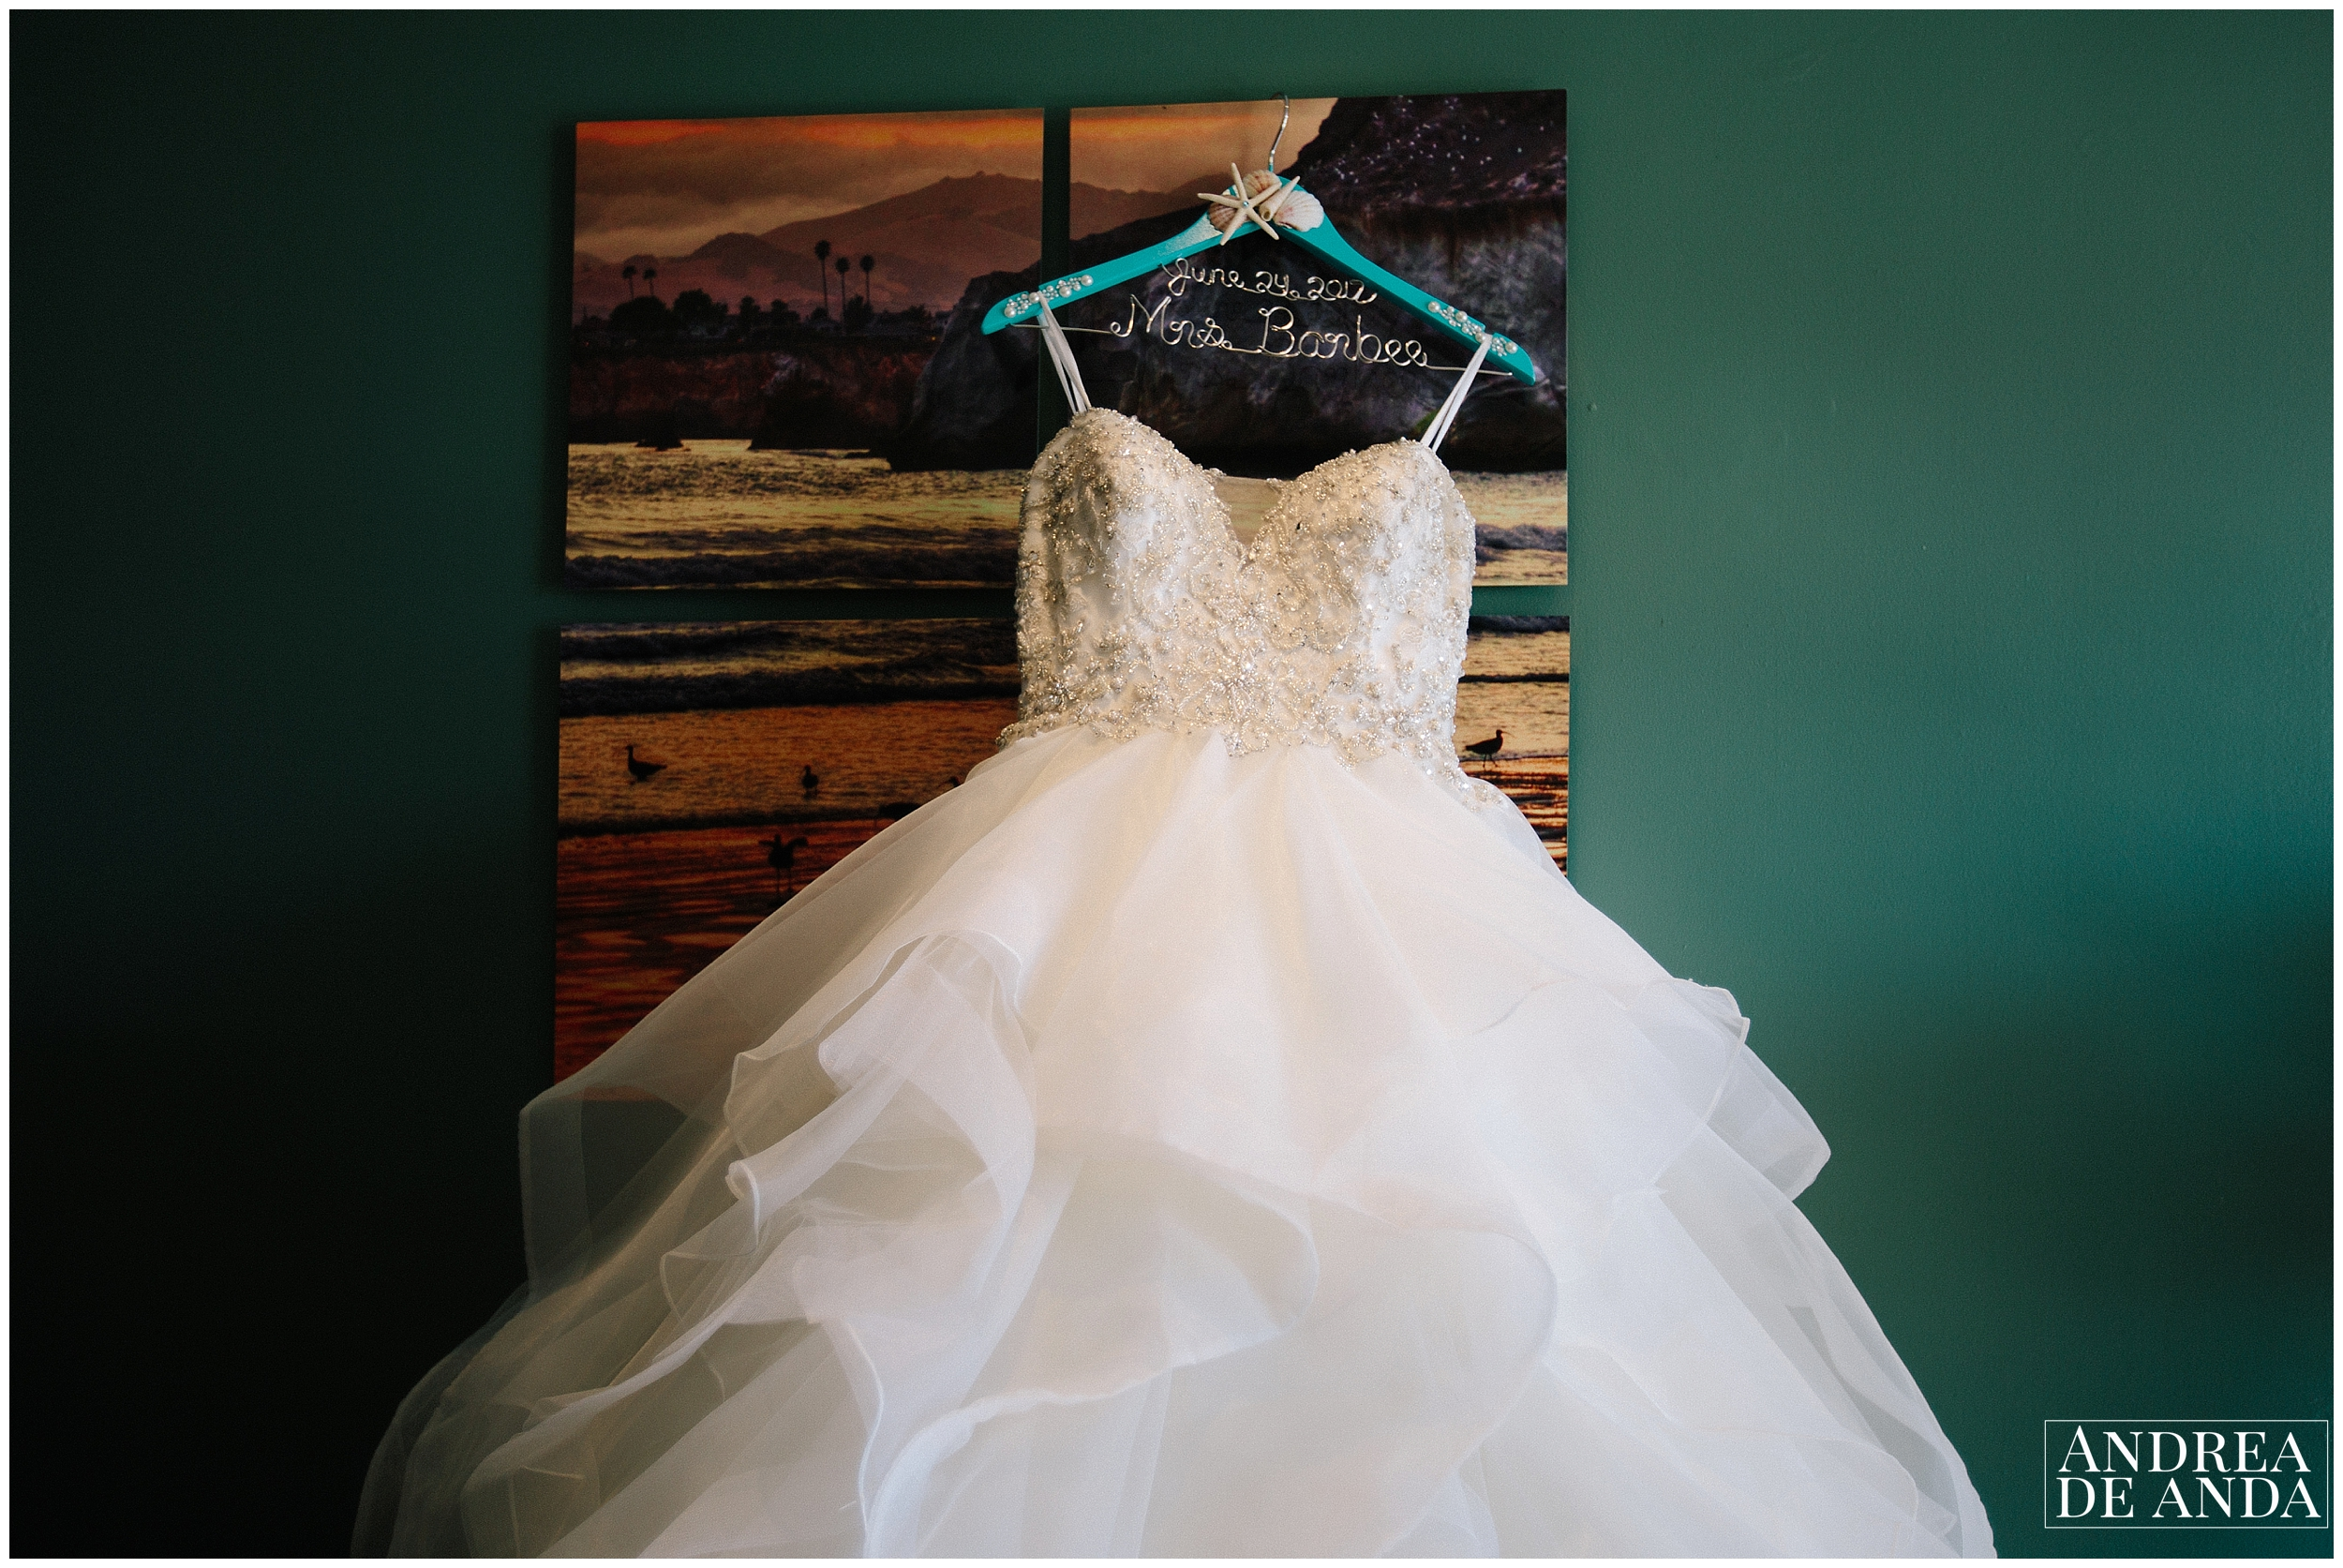 Wedding dress styled for picture at Sea Venture Hotel in Pismo Beach